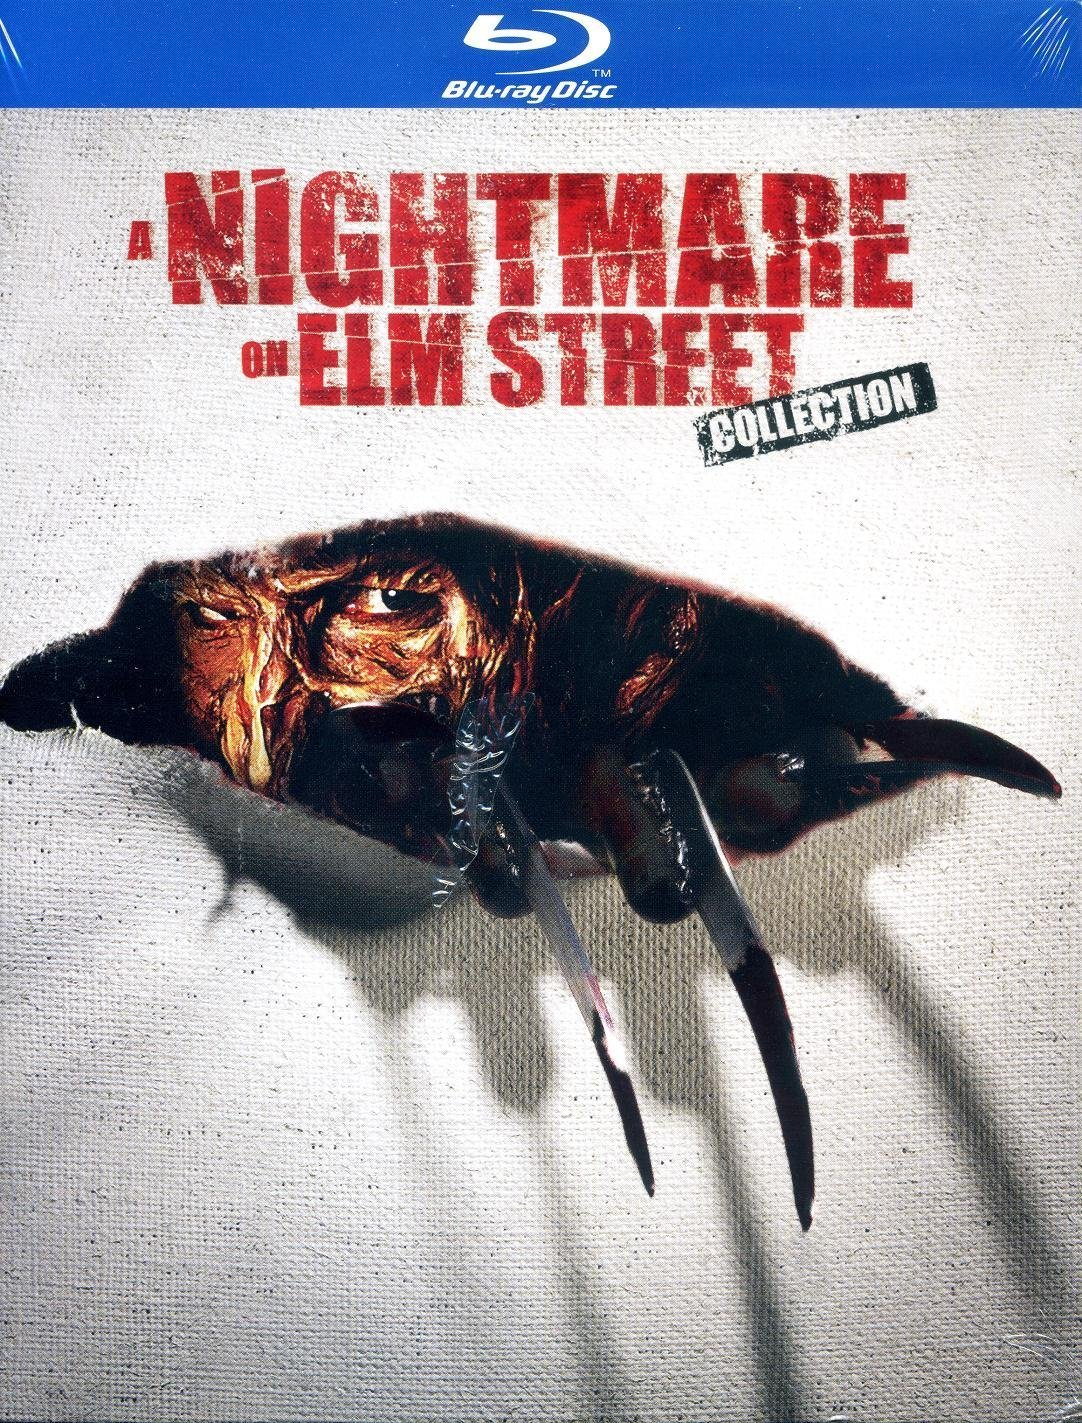 A Nightmare on Elm Street Collection (1984-2010) Dual Audio [Hindi+English] | x264 | x265 10bit HEVC Bluray | 1080p | 720p